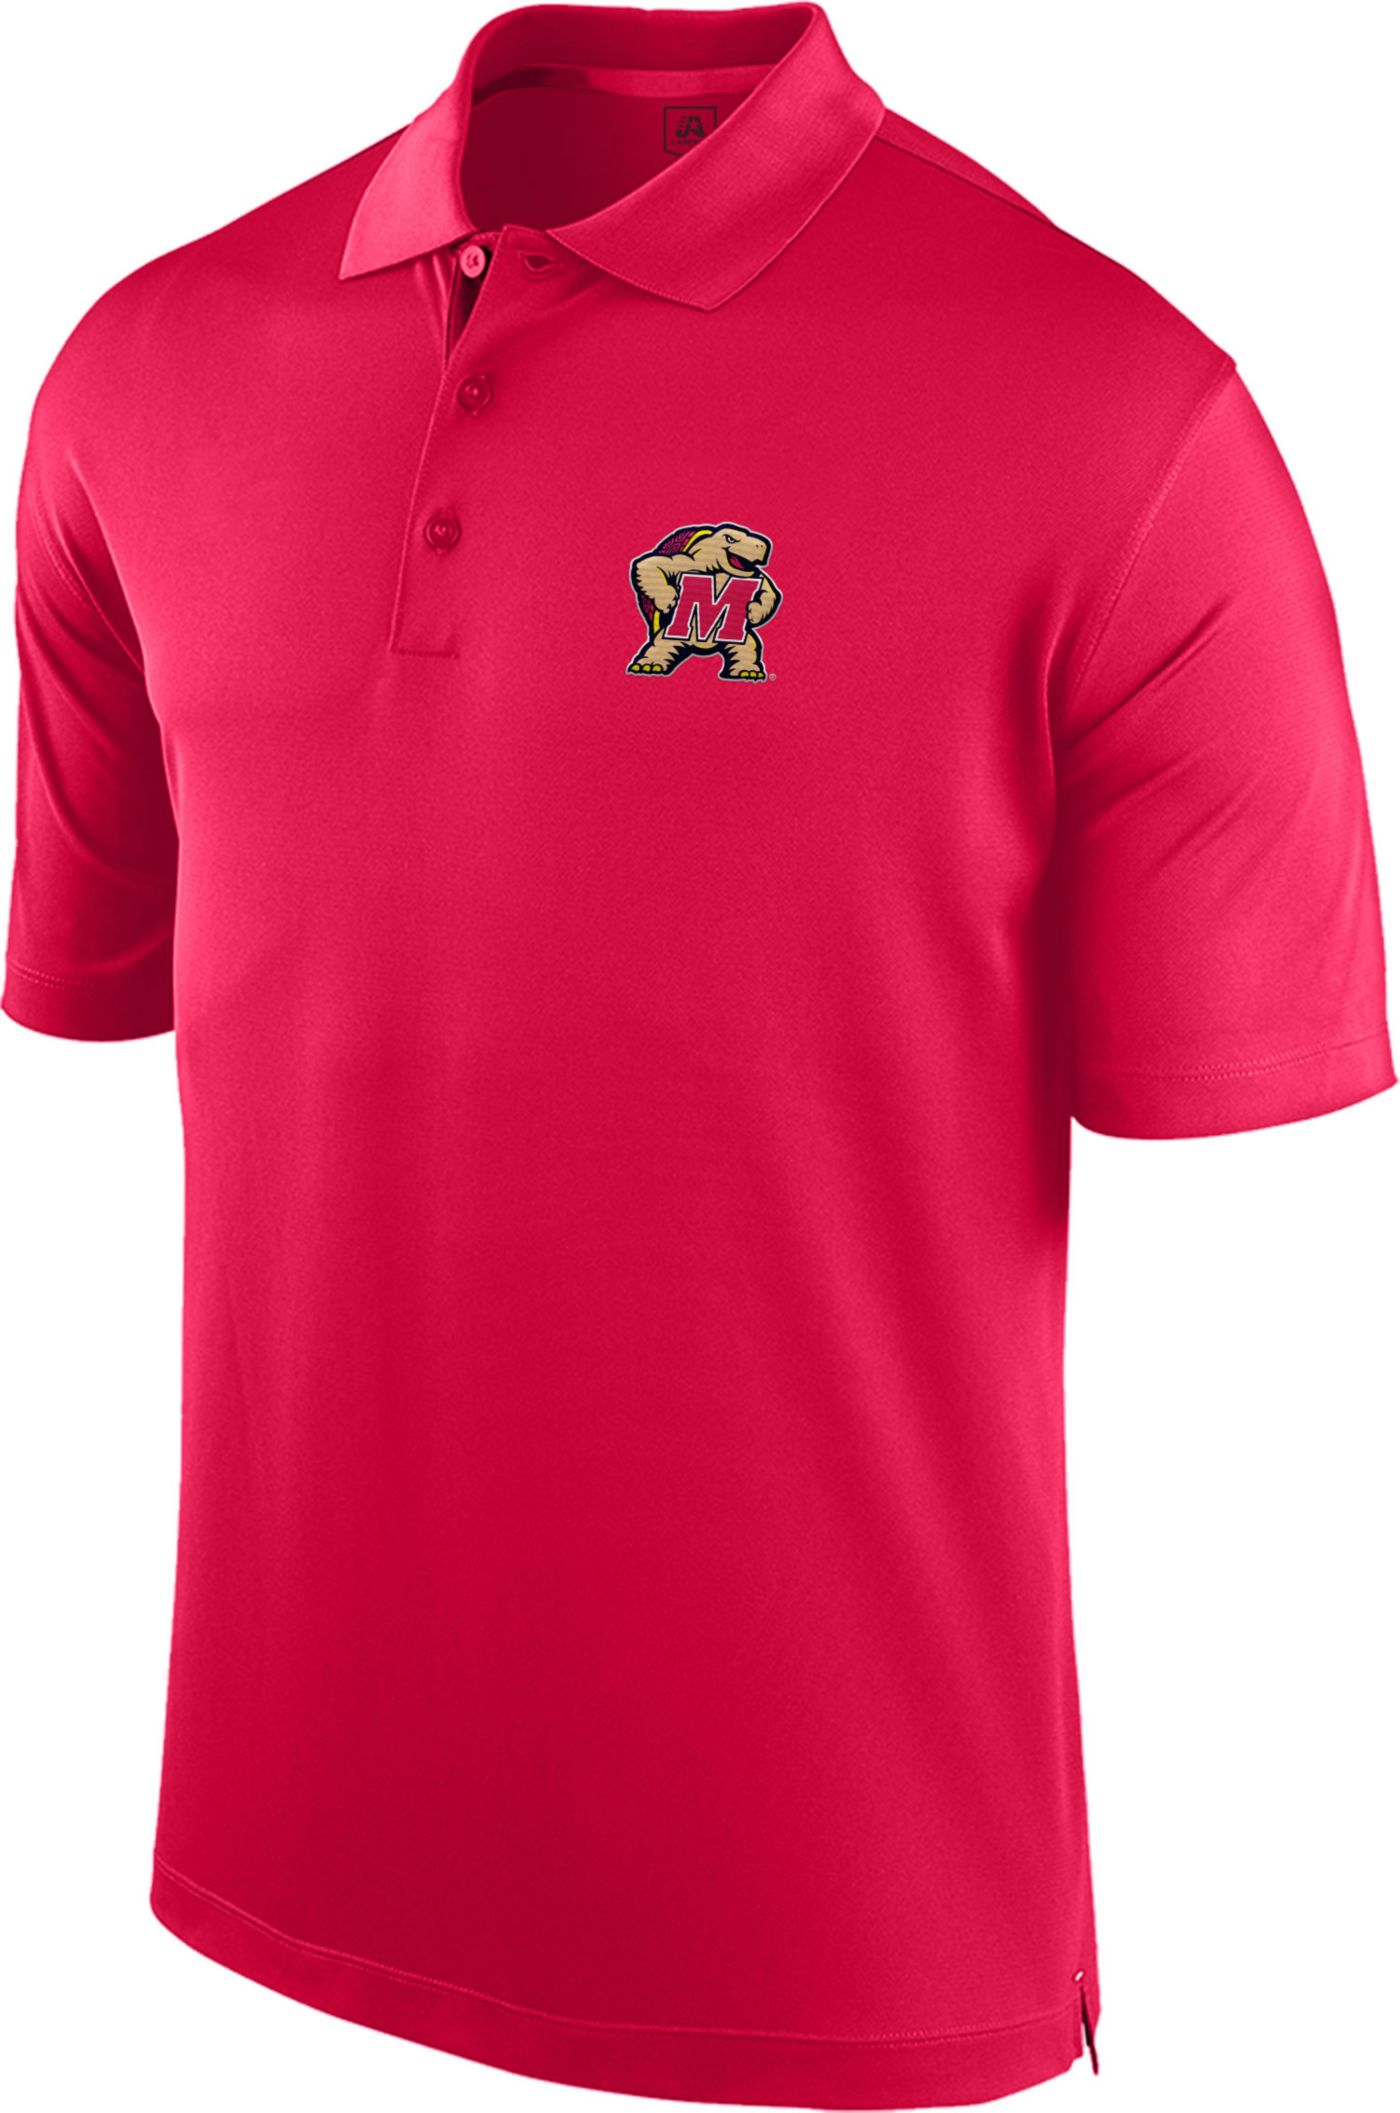 Top of the World Men's Maryland Terrapins Red Spector Polo